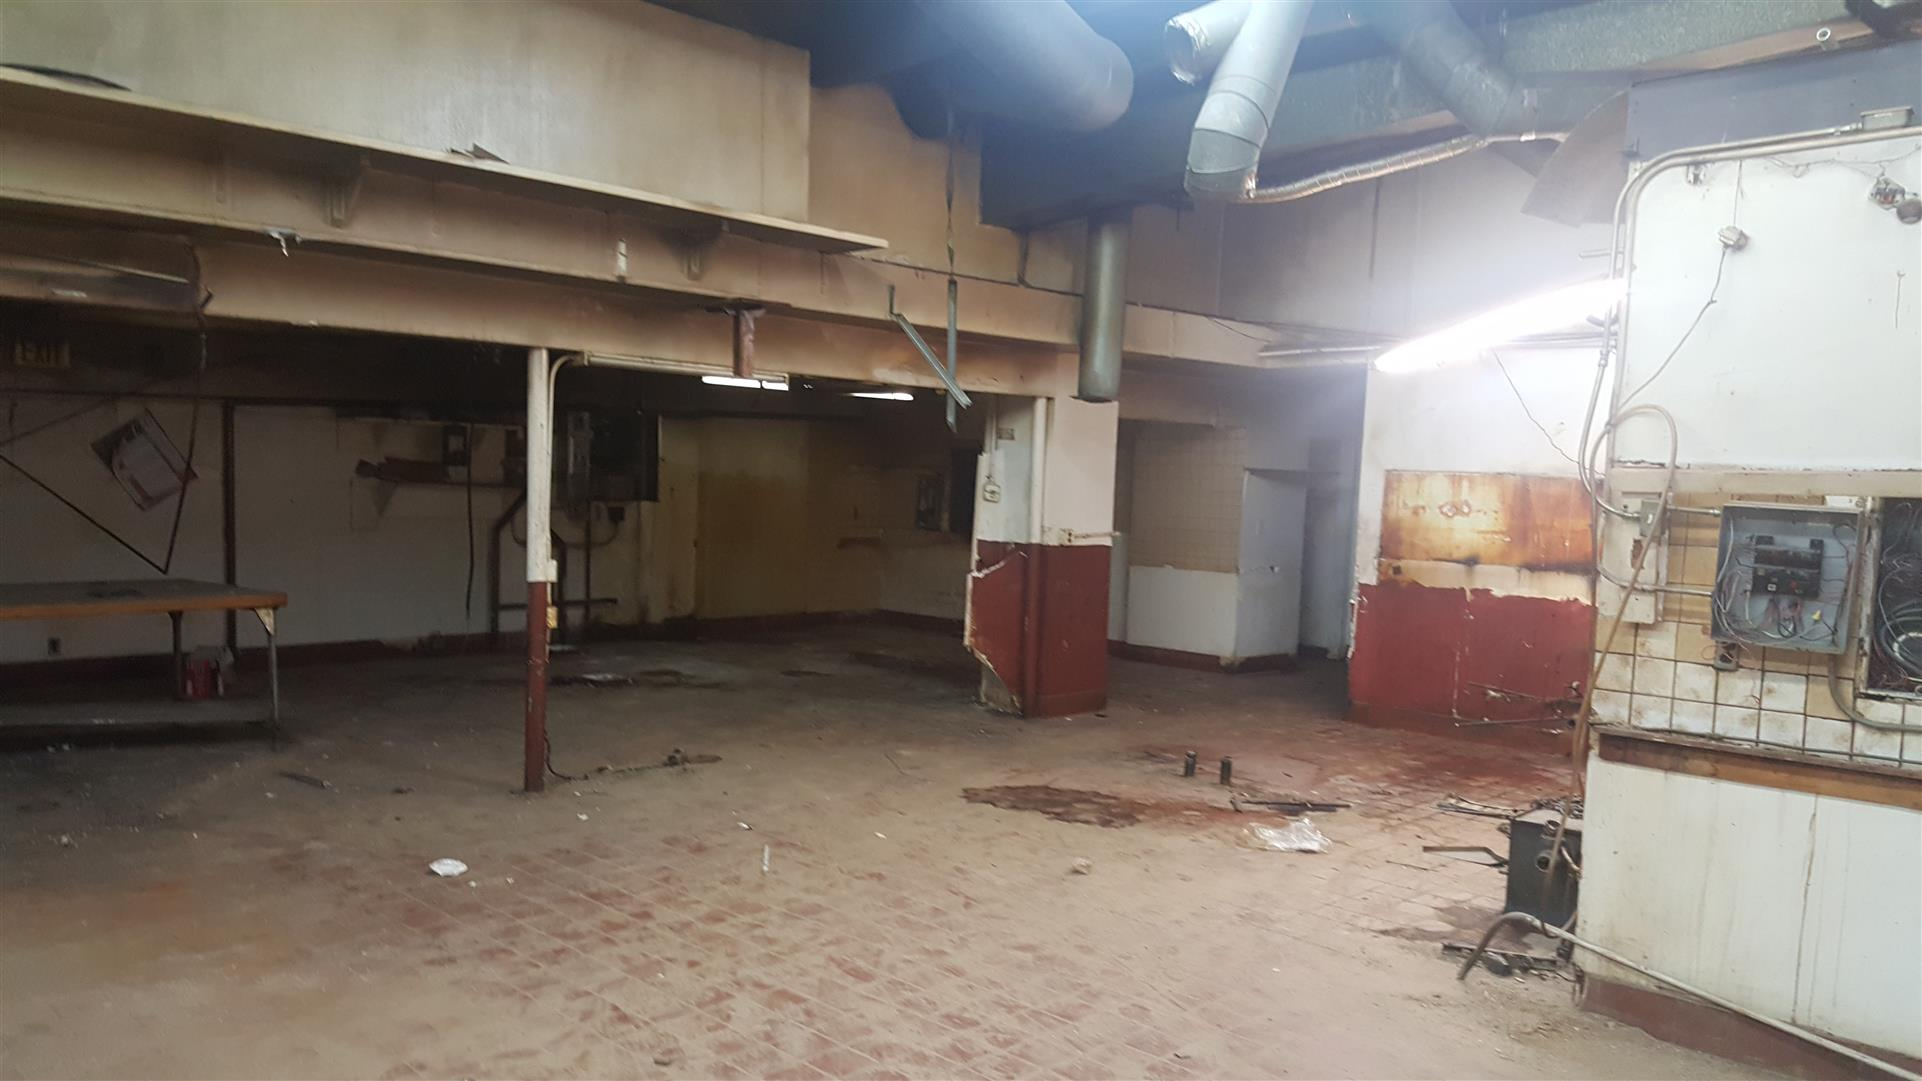 another empty room ready for renovation